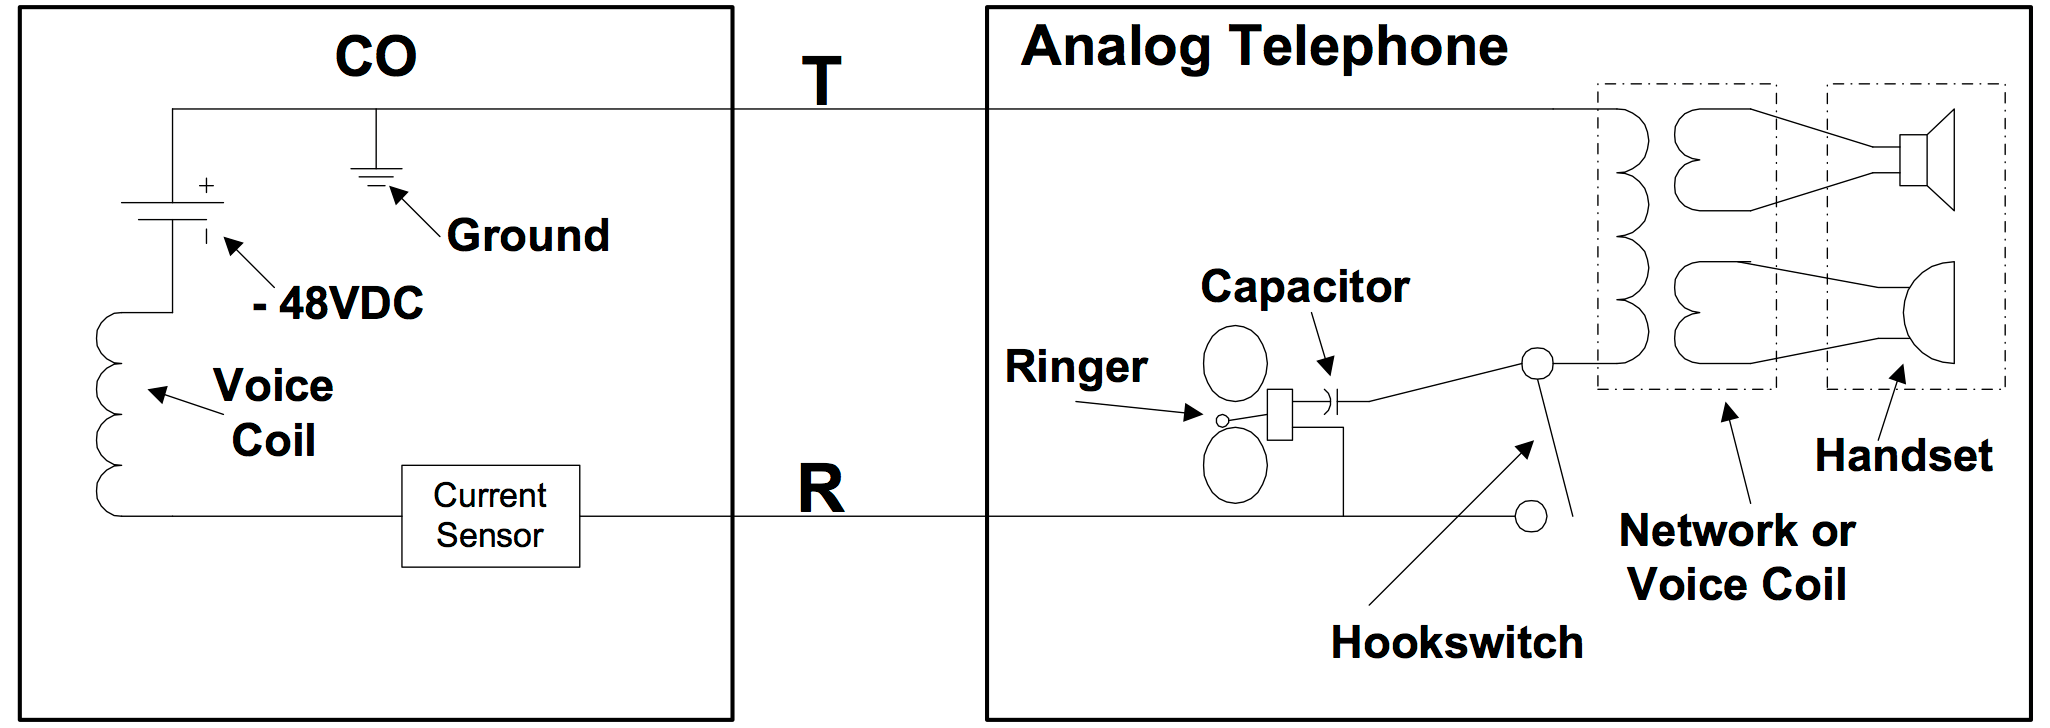 fig 5 all about analog lines Residential Telephone Wiring Diagram at eliteediting.co